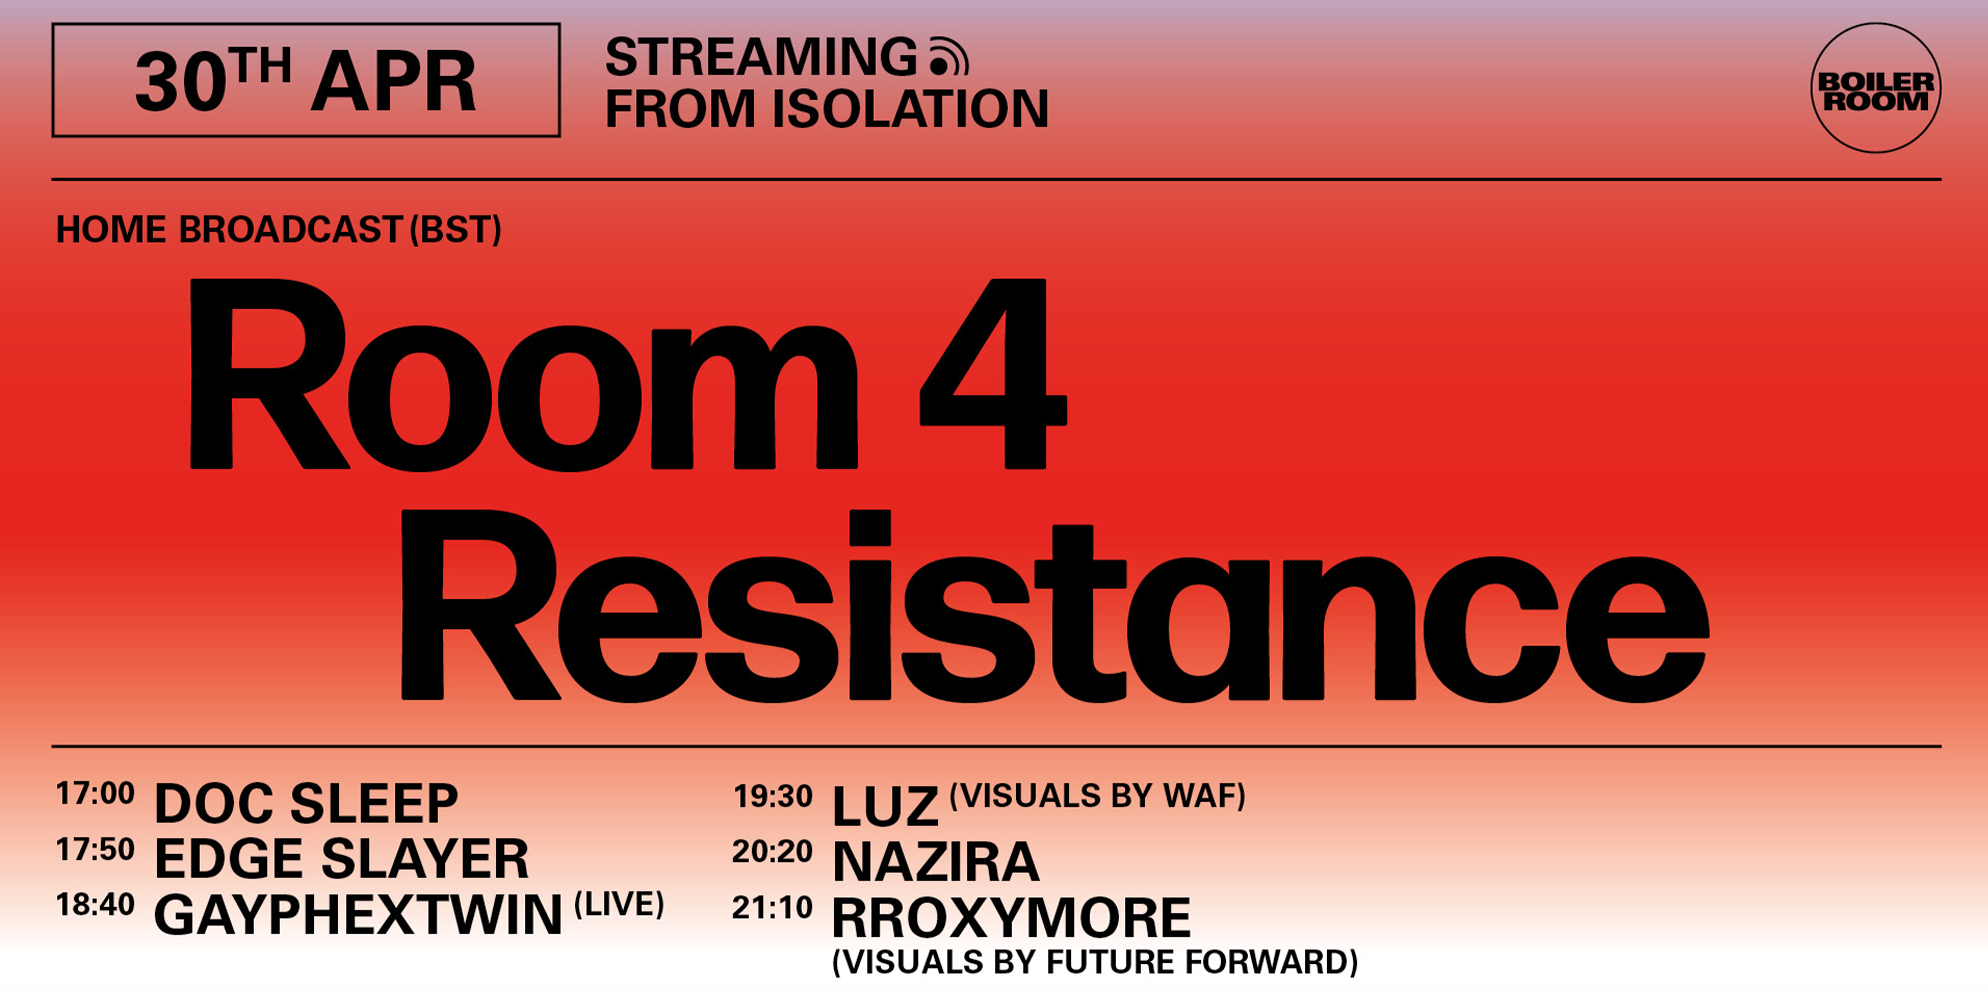 BOILER ROOM X BALLANTINE'S | Streaming from Isolation | Room 4 Resistance